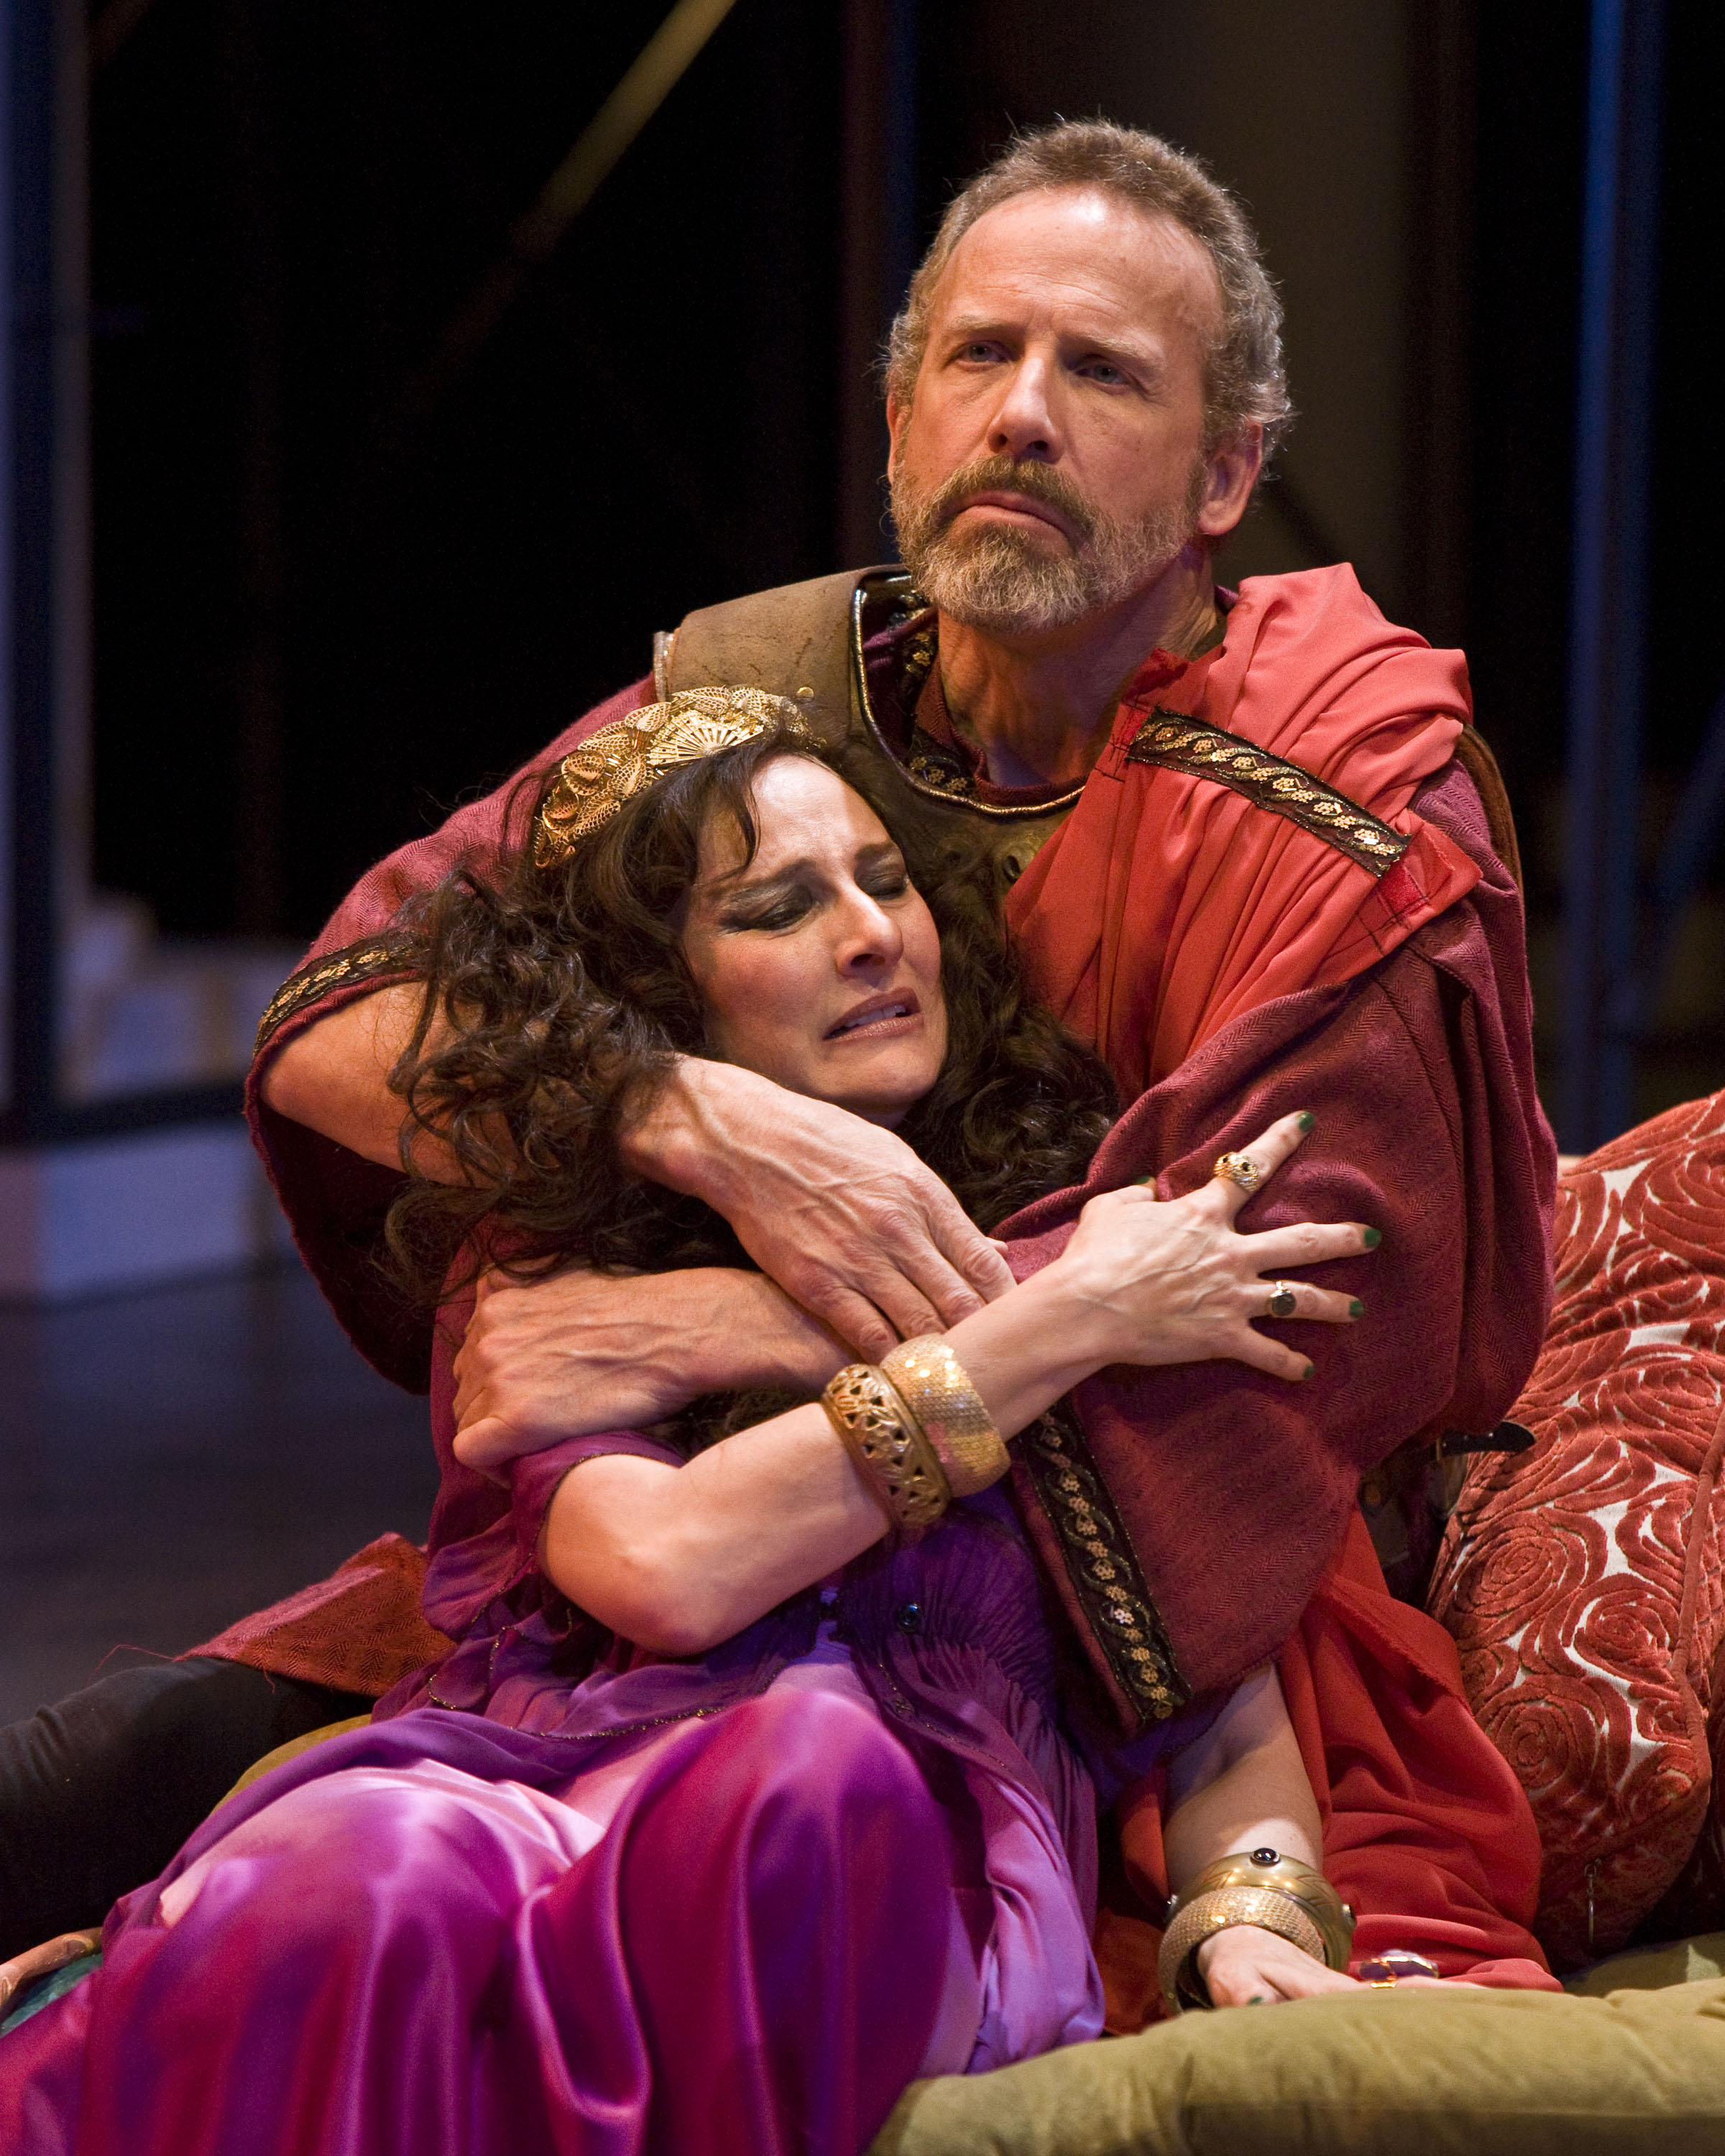 los angeles theater review antony and cleopatra a noise in  los angeles theater review antony and cleopatra a noise in in pasadena